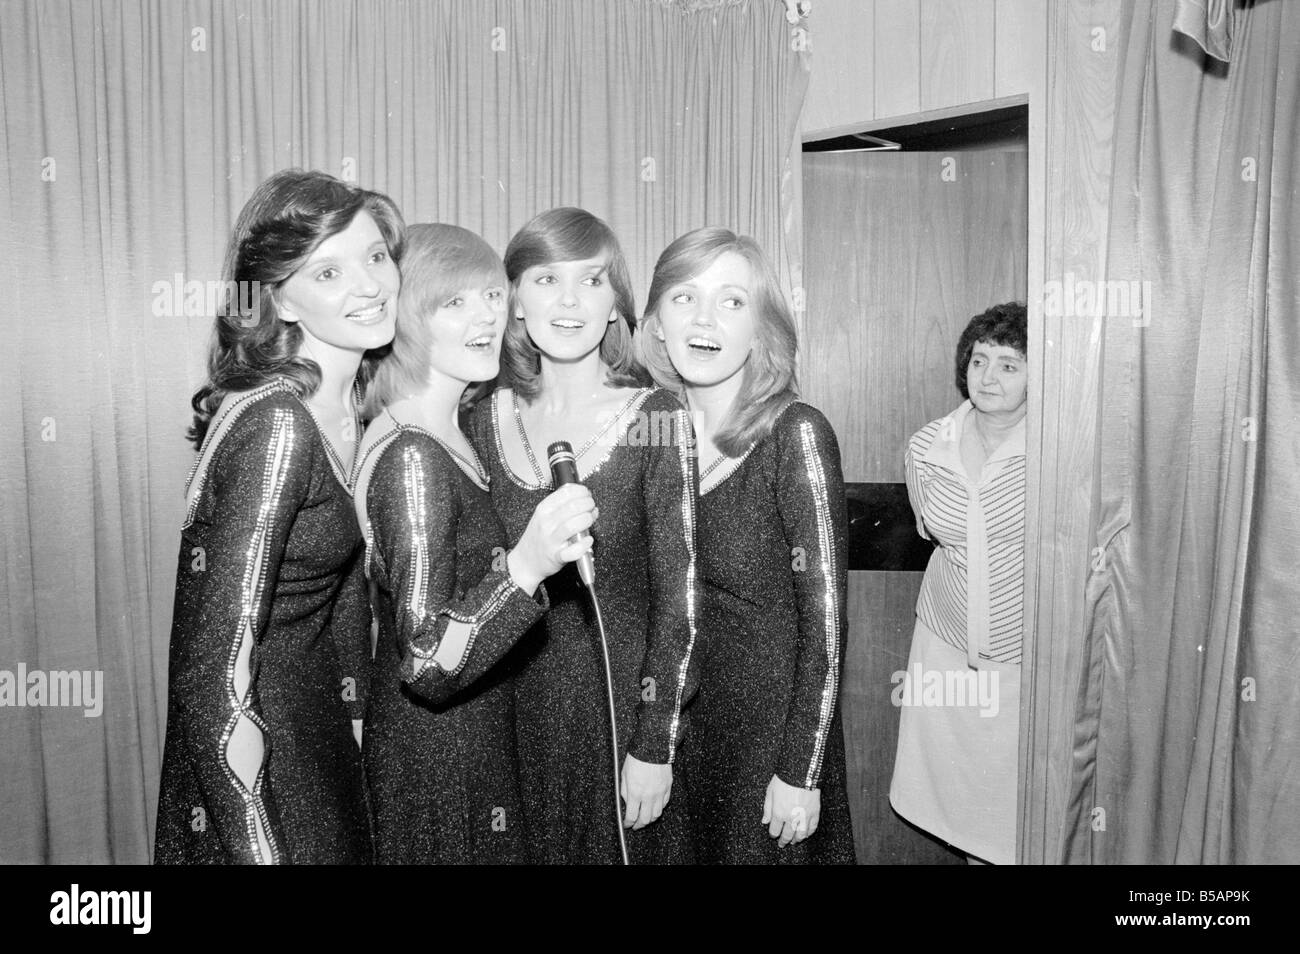 Maureen Nolan mother of the Nolan sisters seen here with the